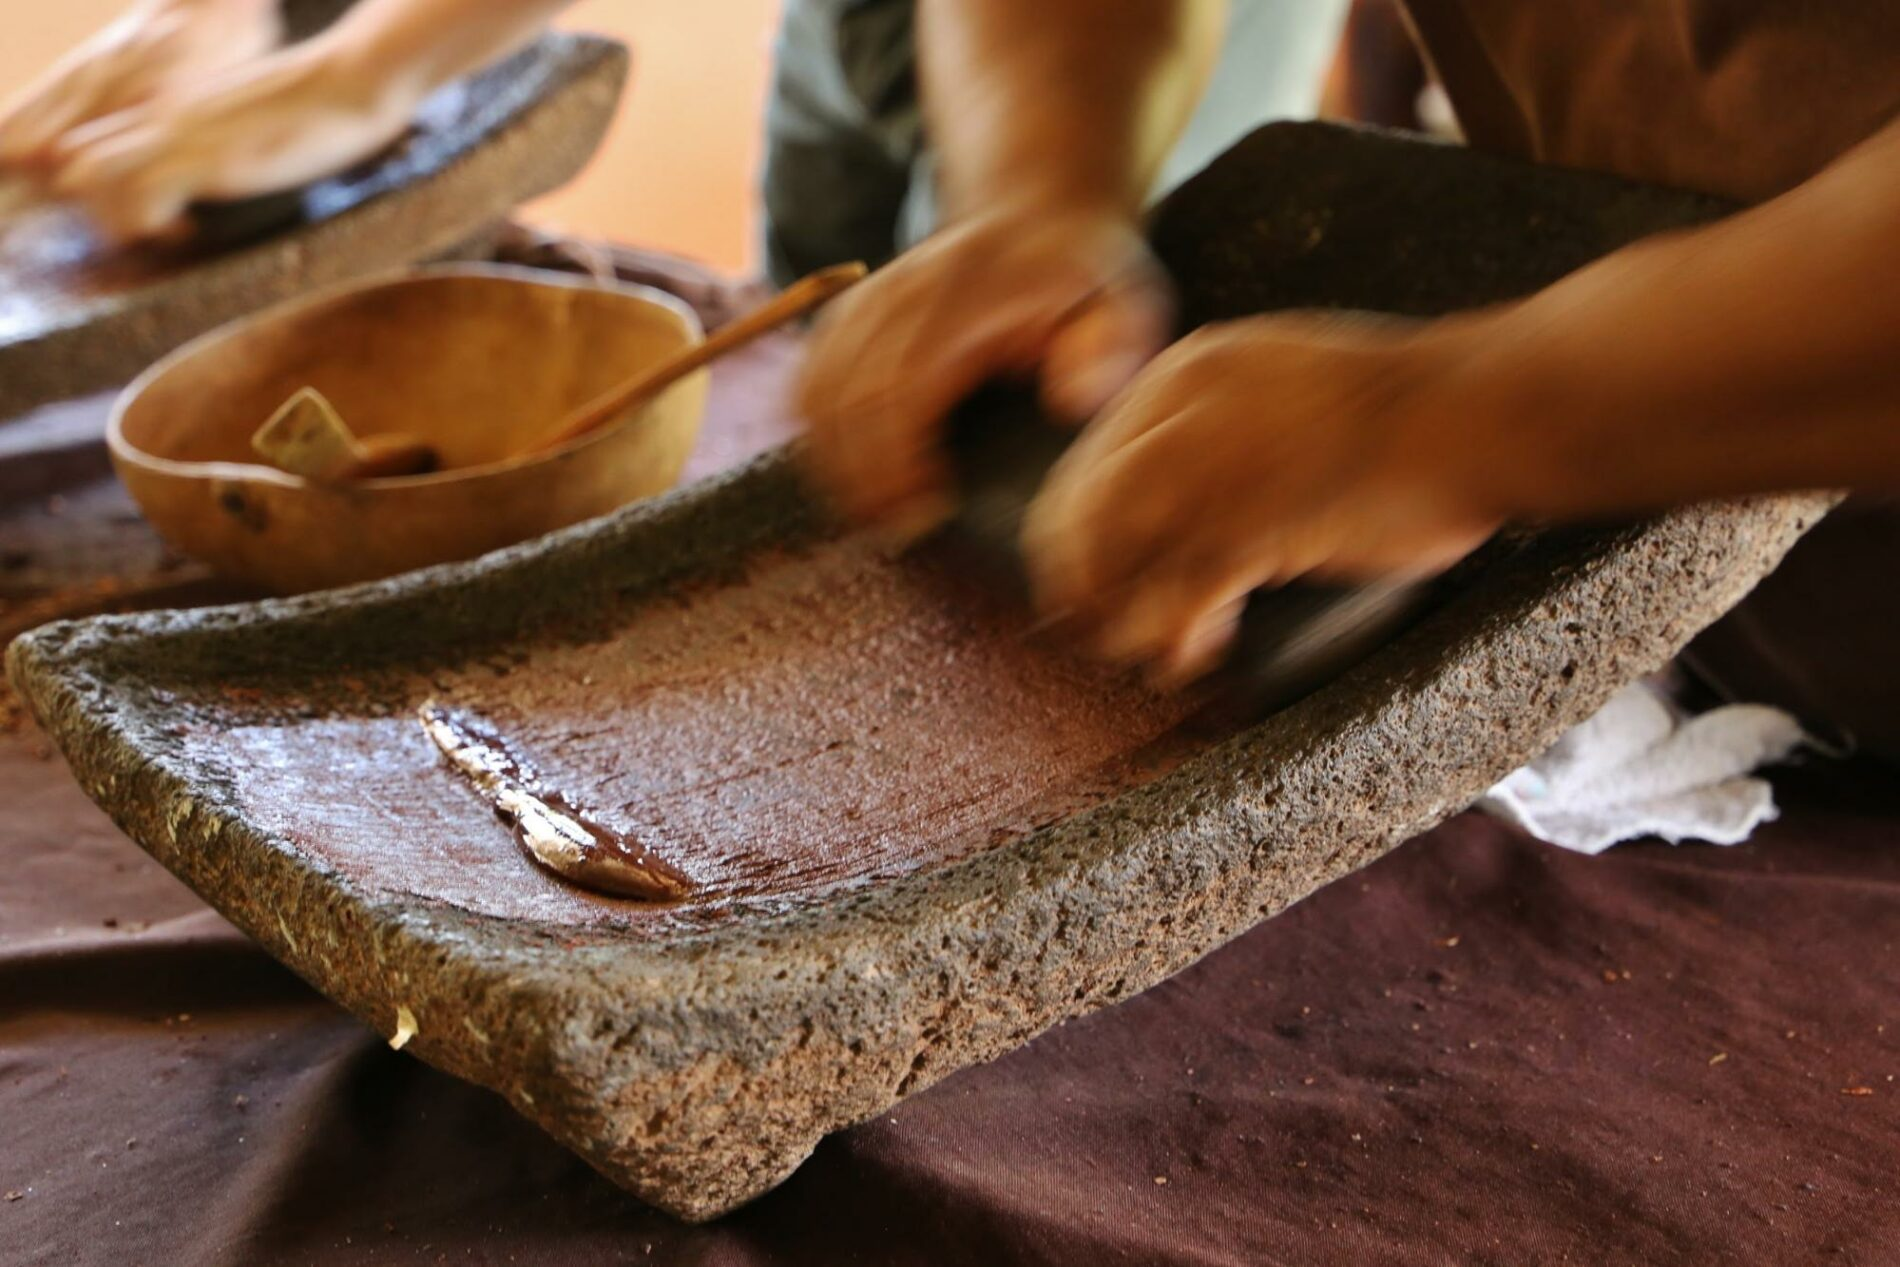 Traditional Belizean Maya chocolate making at Ixcacao farm